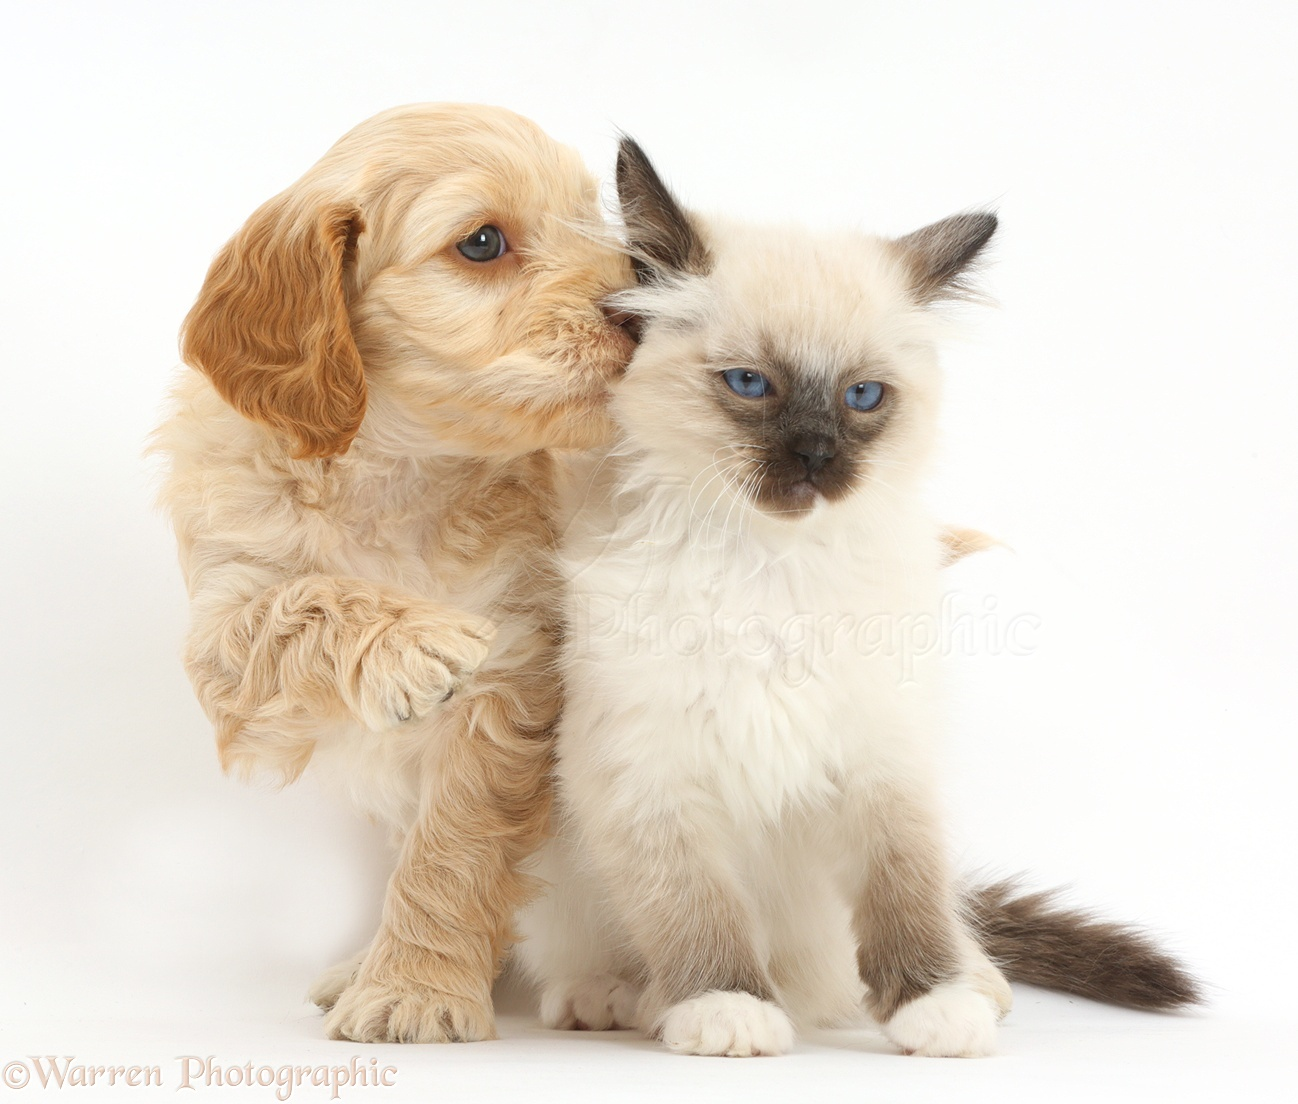 pets ragdoll kitten and cockapoo puppy photo   wp41531